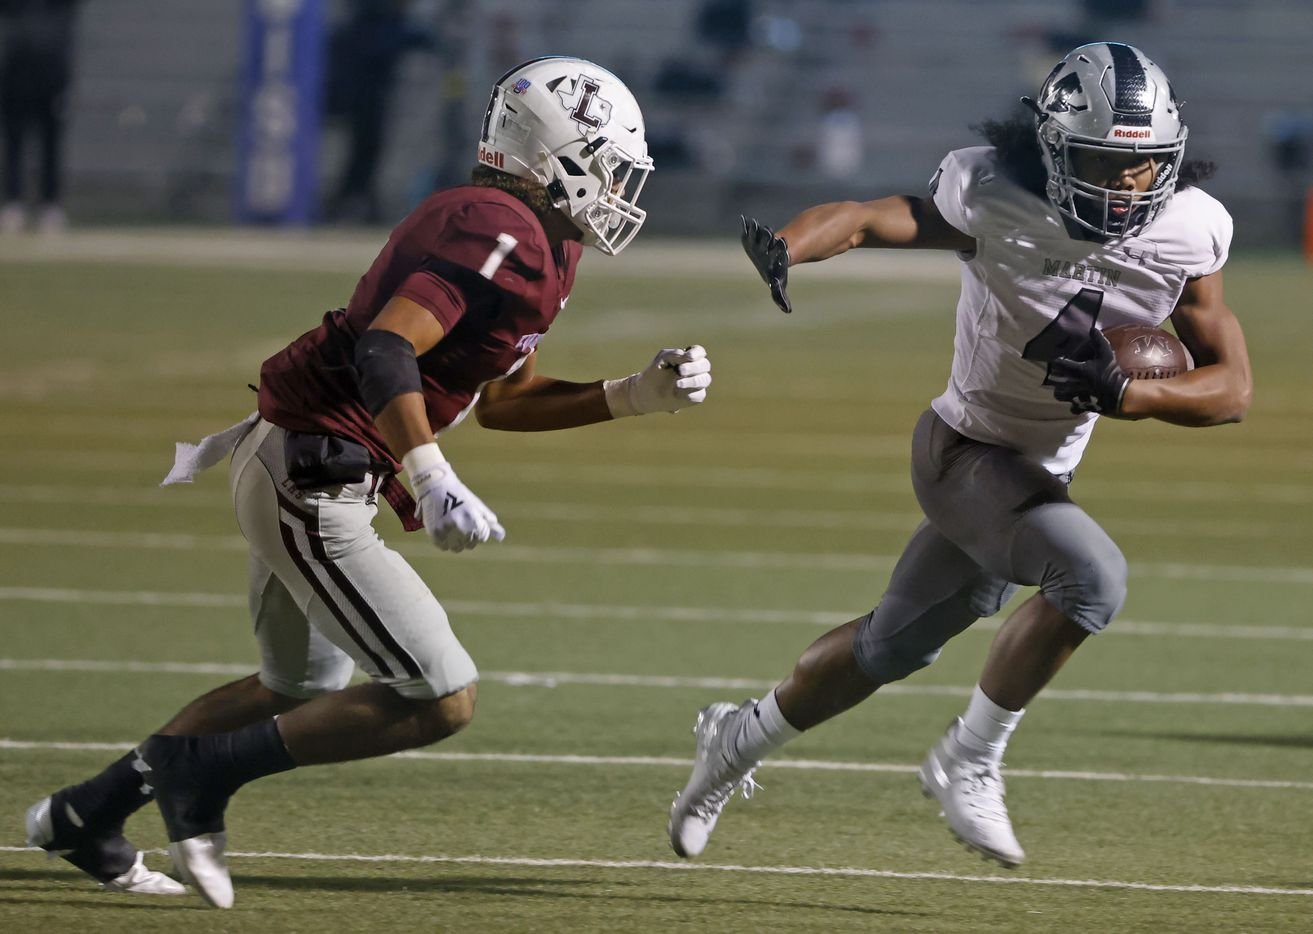 Arlington Martin running back Zaire Barrow (4) runs past Lewisville defender Jaydan Hardy (1) during Class 6A Division I area-round playoff hight school football game on Dec. 17, 2020. (Michael Ainsworth/Special Contributor)